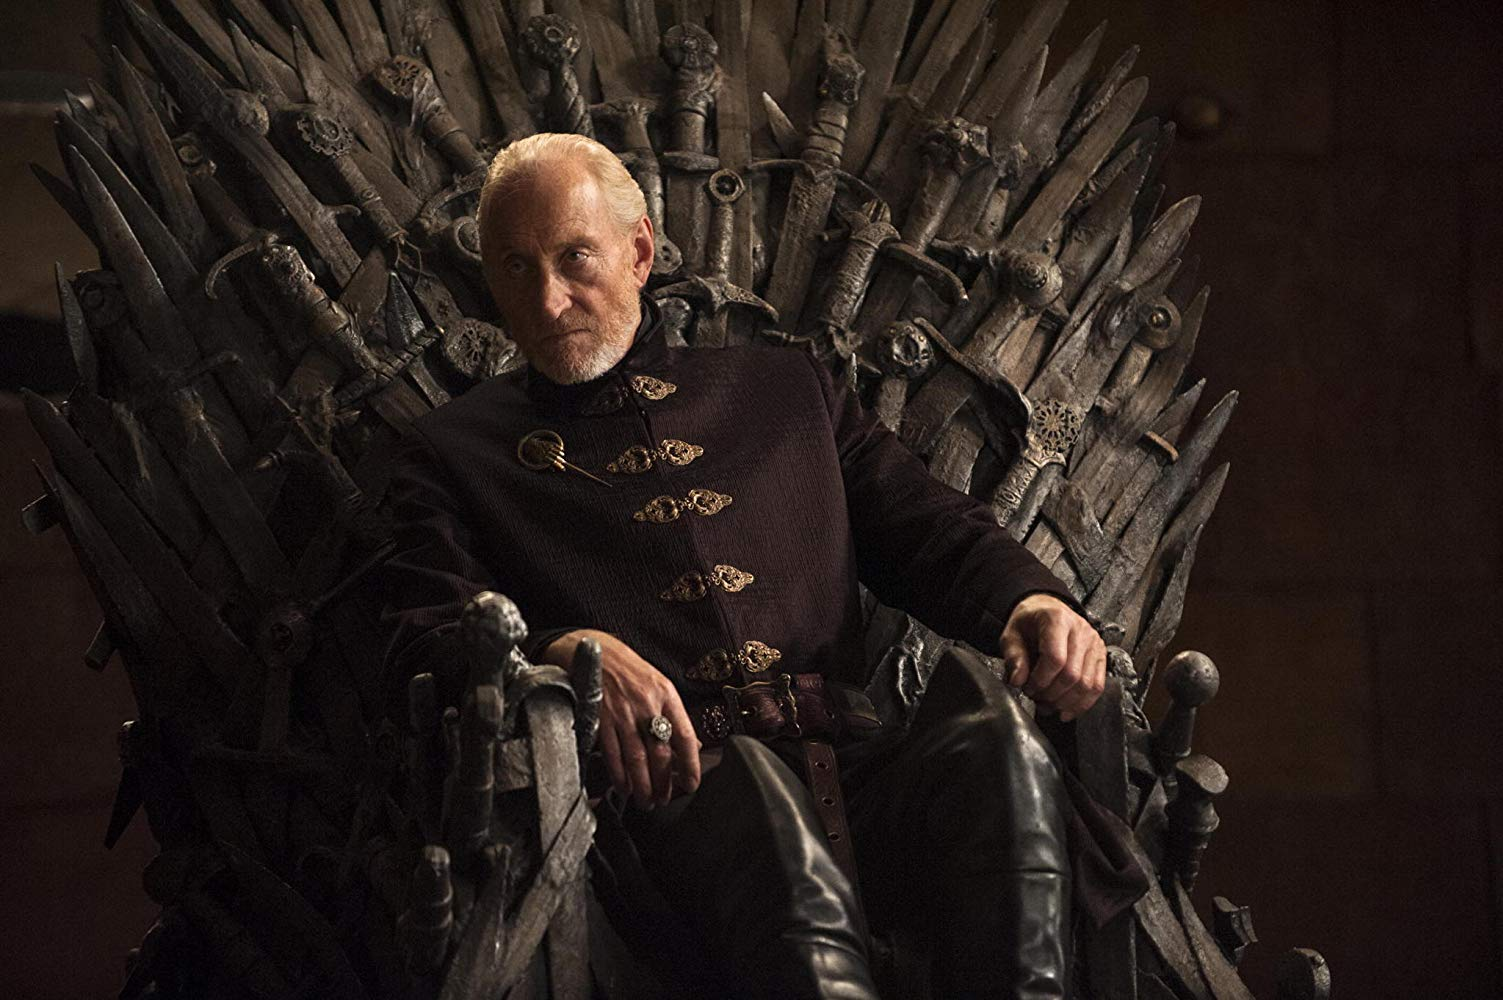 Charles Dance as Tywin Lannister in 'Game of Thrones'. (Source: IMDB)